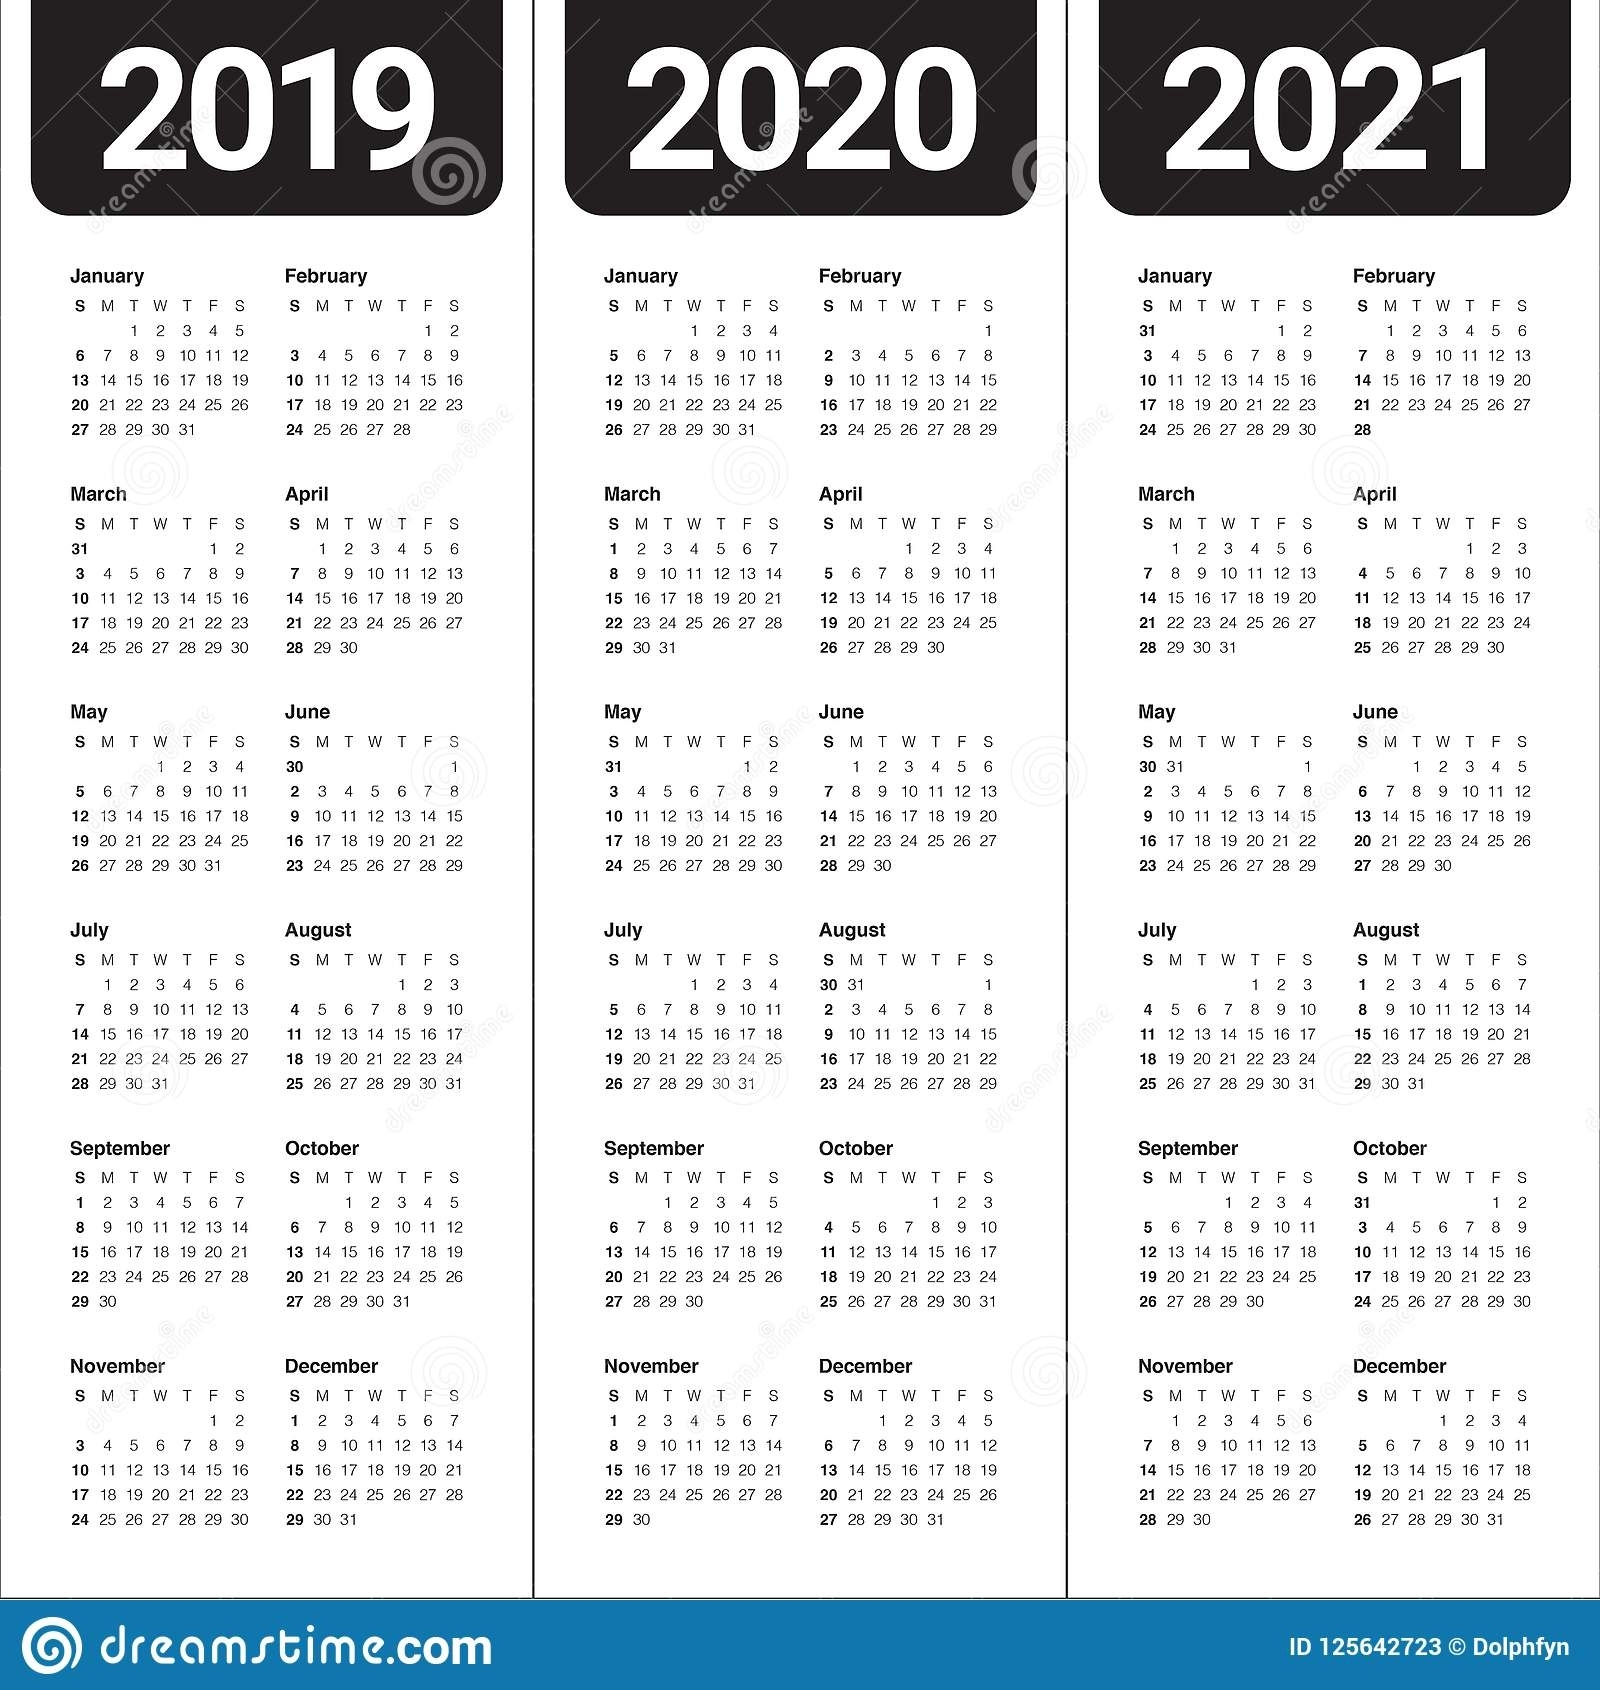 Year 2019 2020 2021 Calendar Vector Design Template Stock Vector with Free Printable 3 Year Calendar 2019 2020 2021